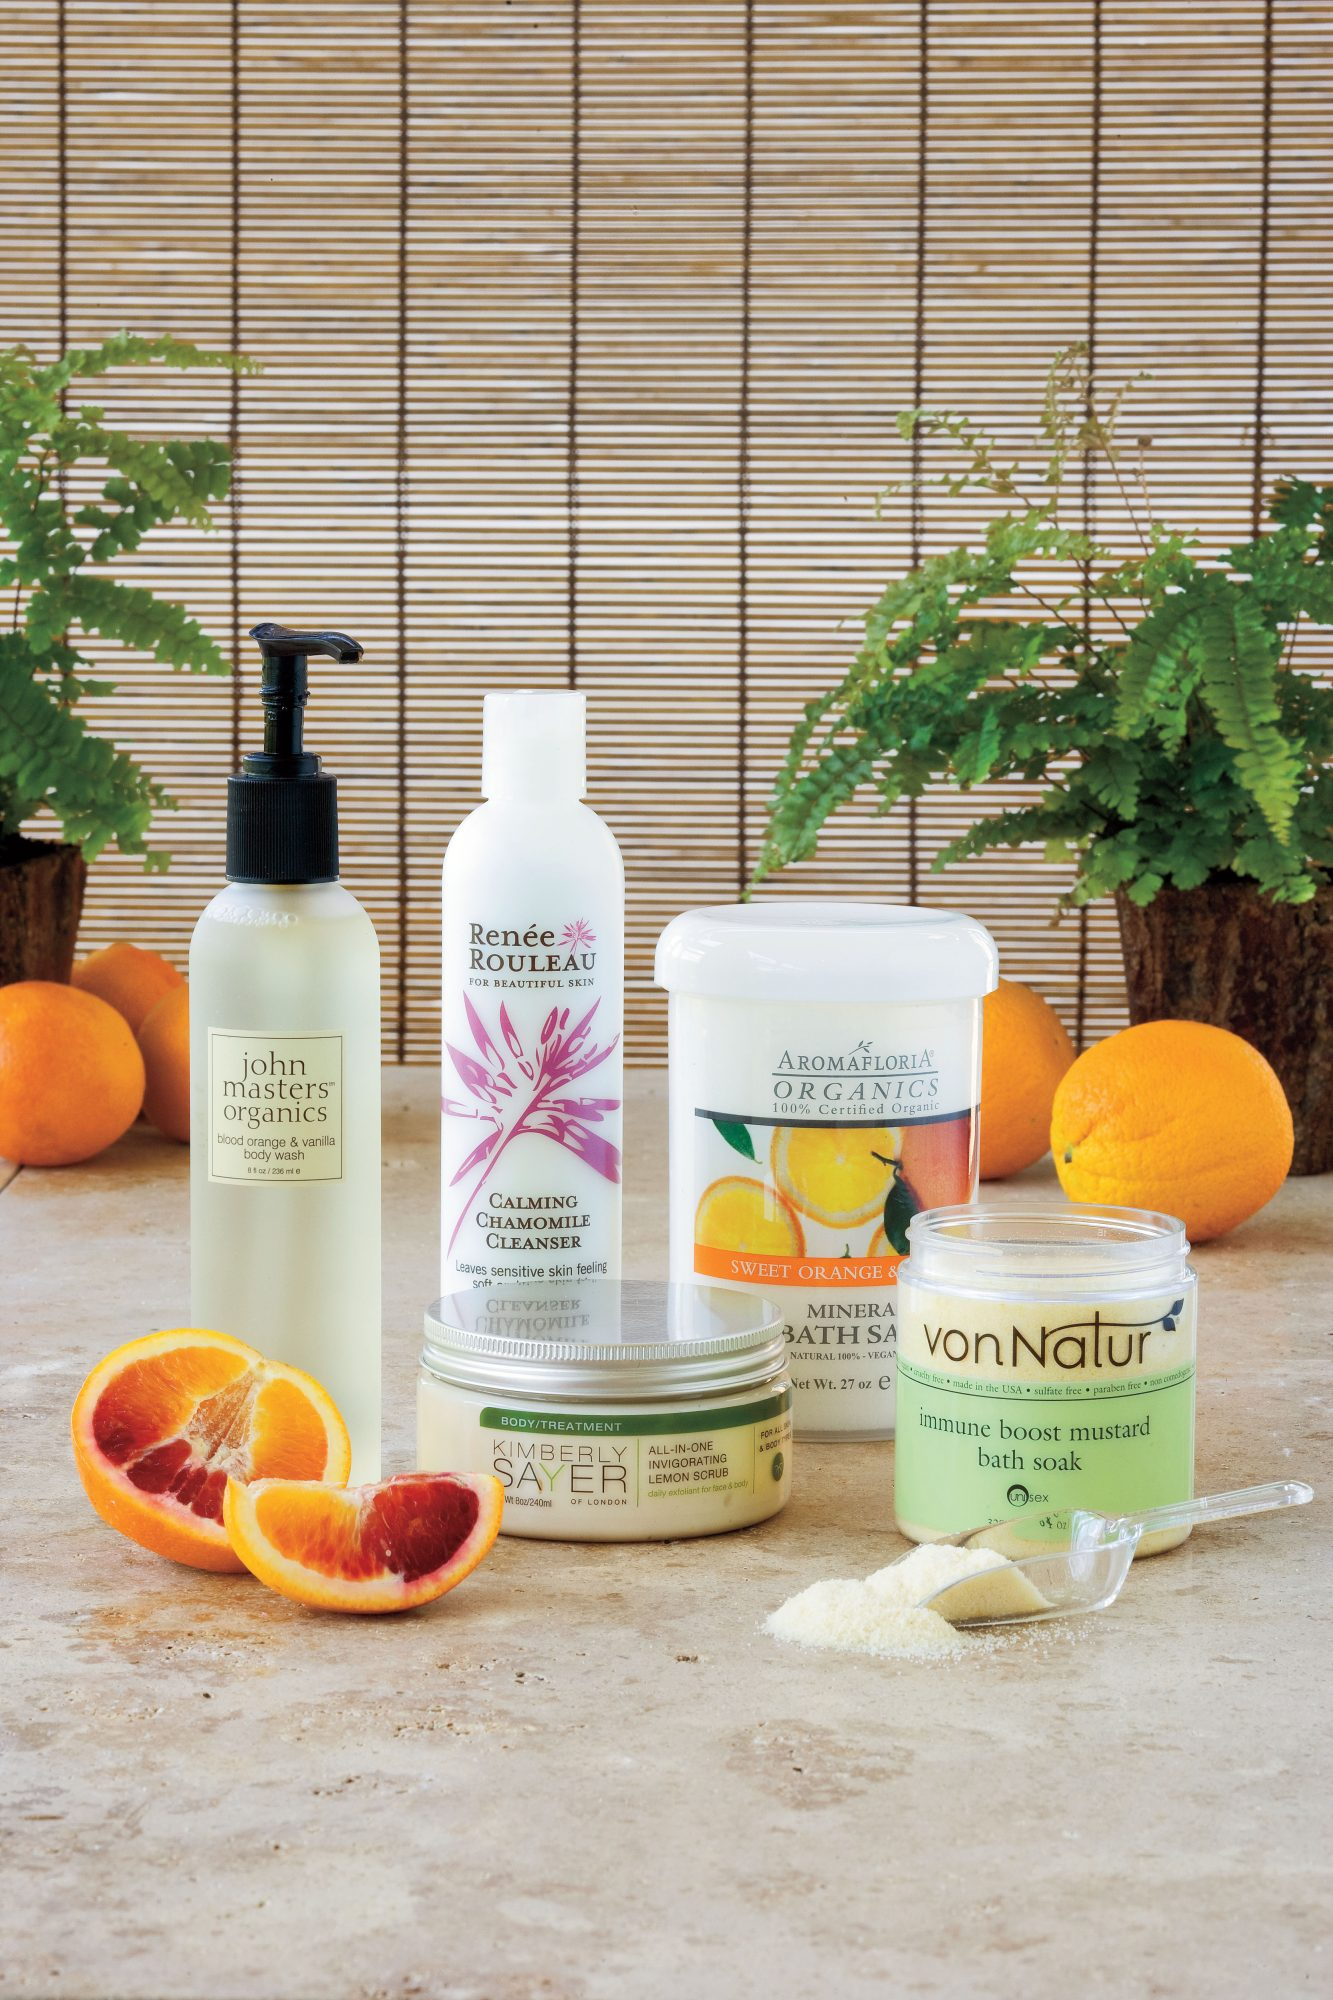 How to Buy Natural Beauty Products | Southern Living